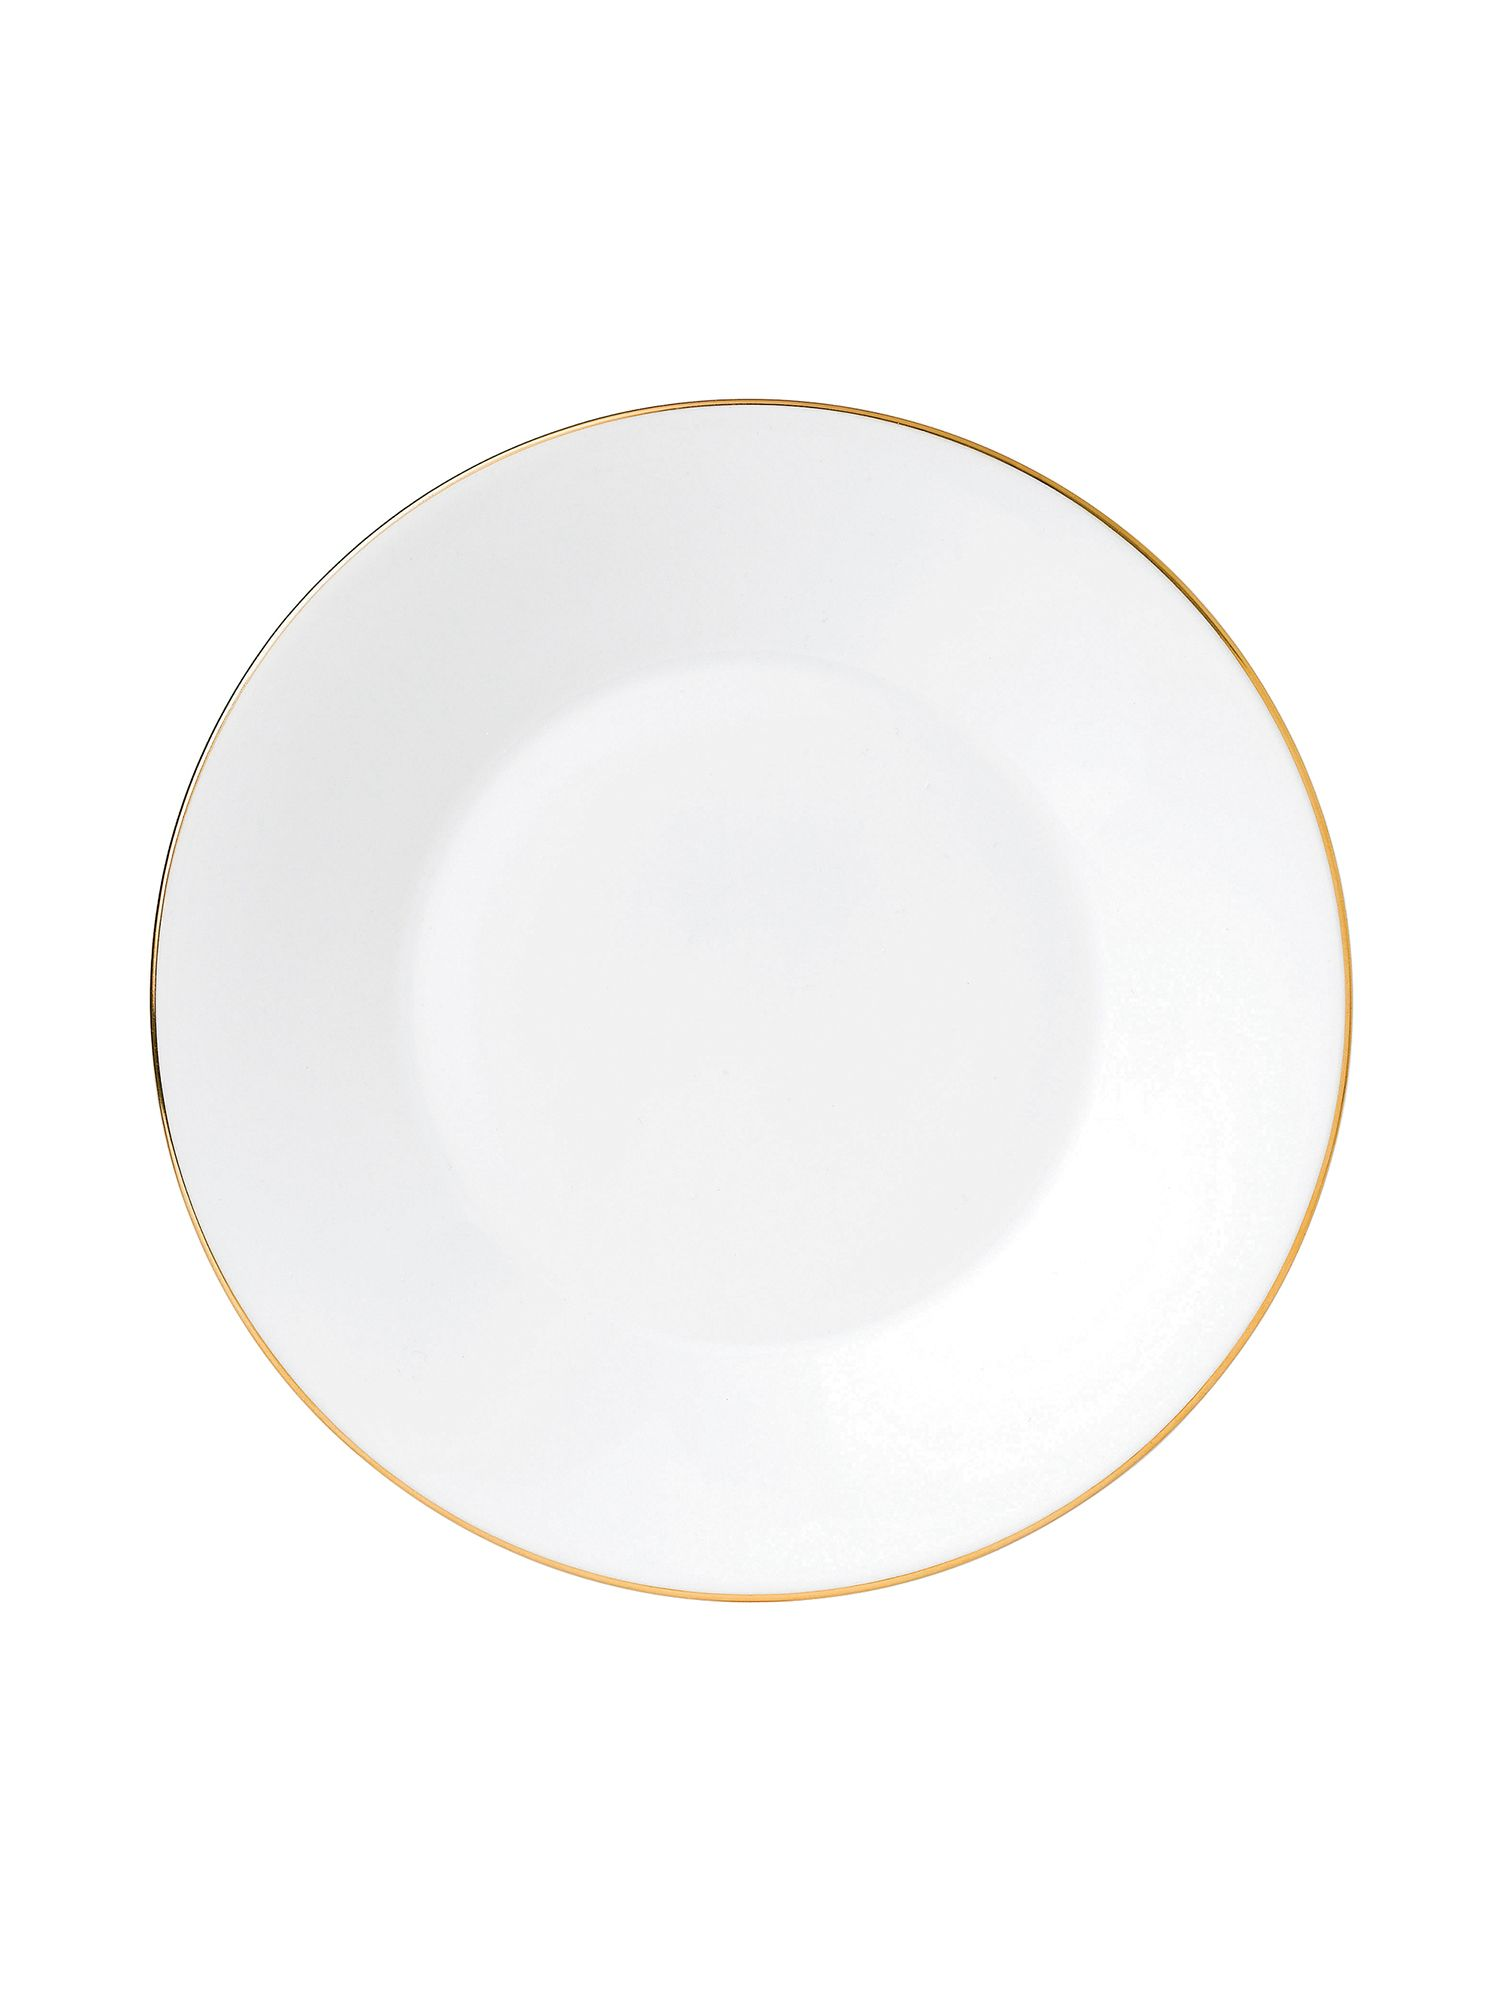 Jasper conran bone china gold tipped plate 23cm